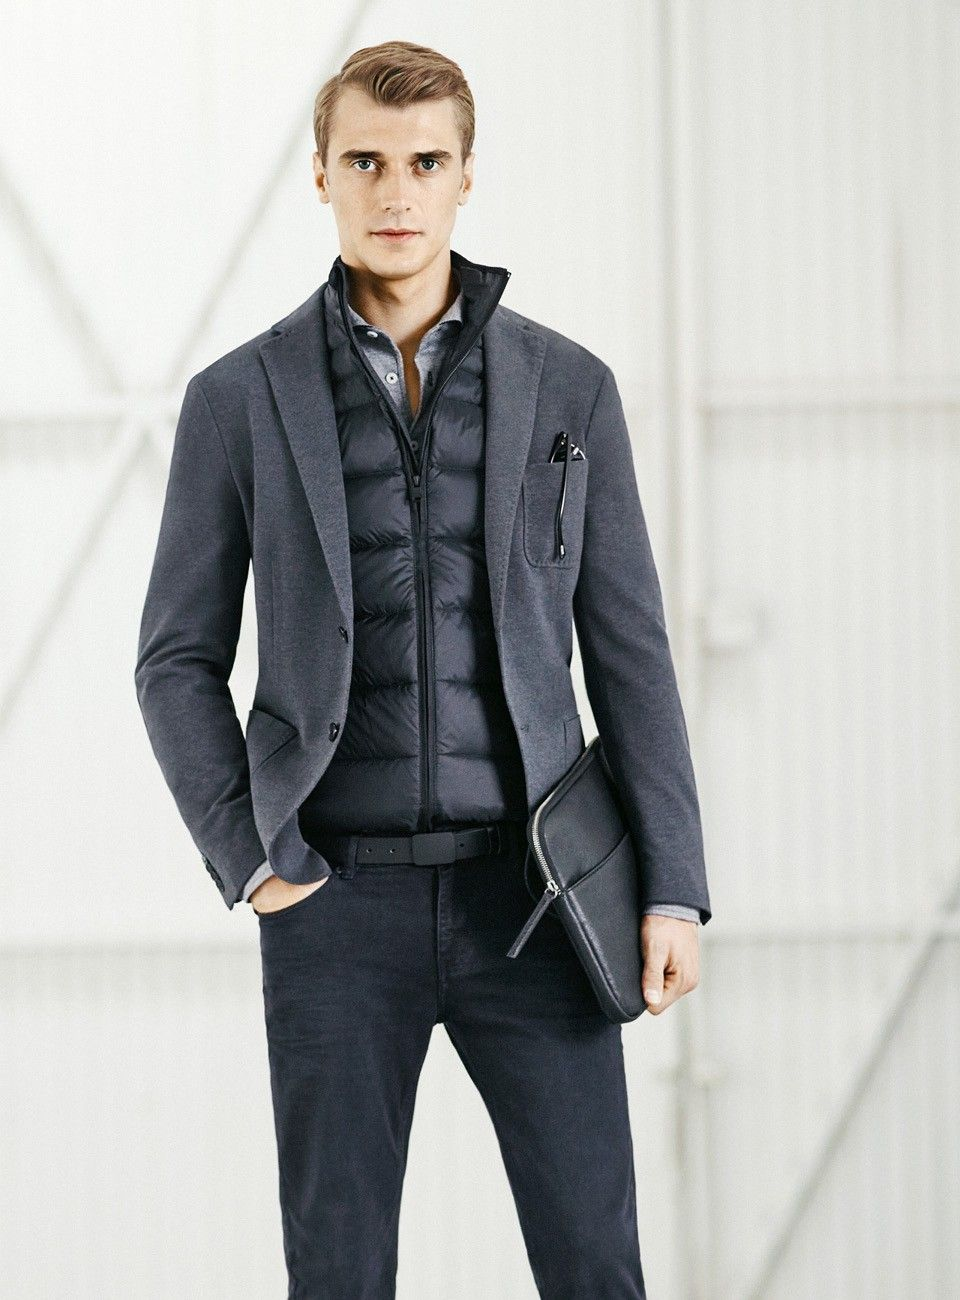 Puffer vest under a suit jacket. Grey/dark neutral outfit, casual ...